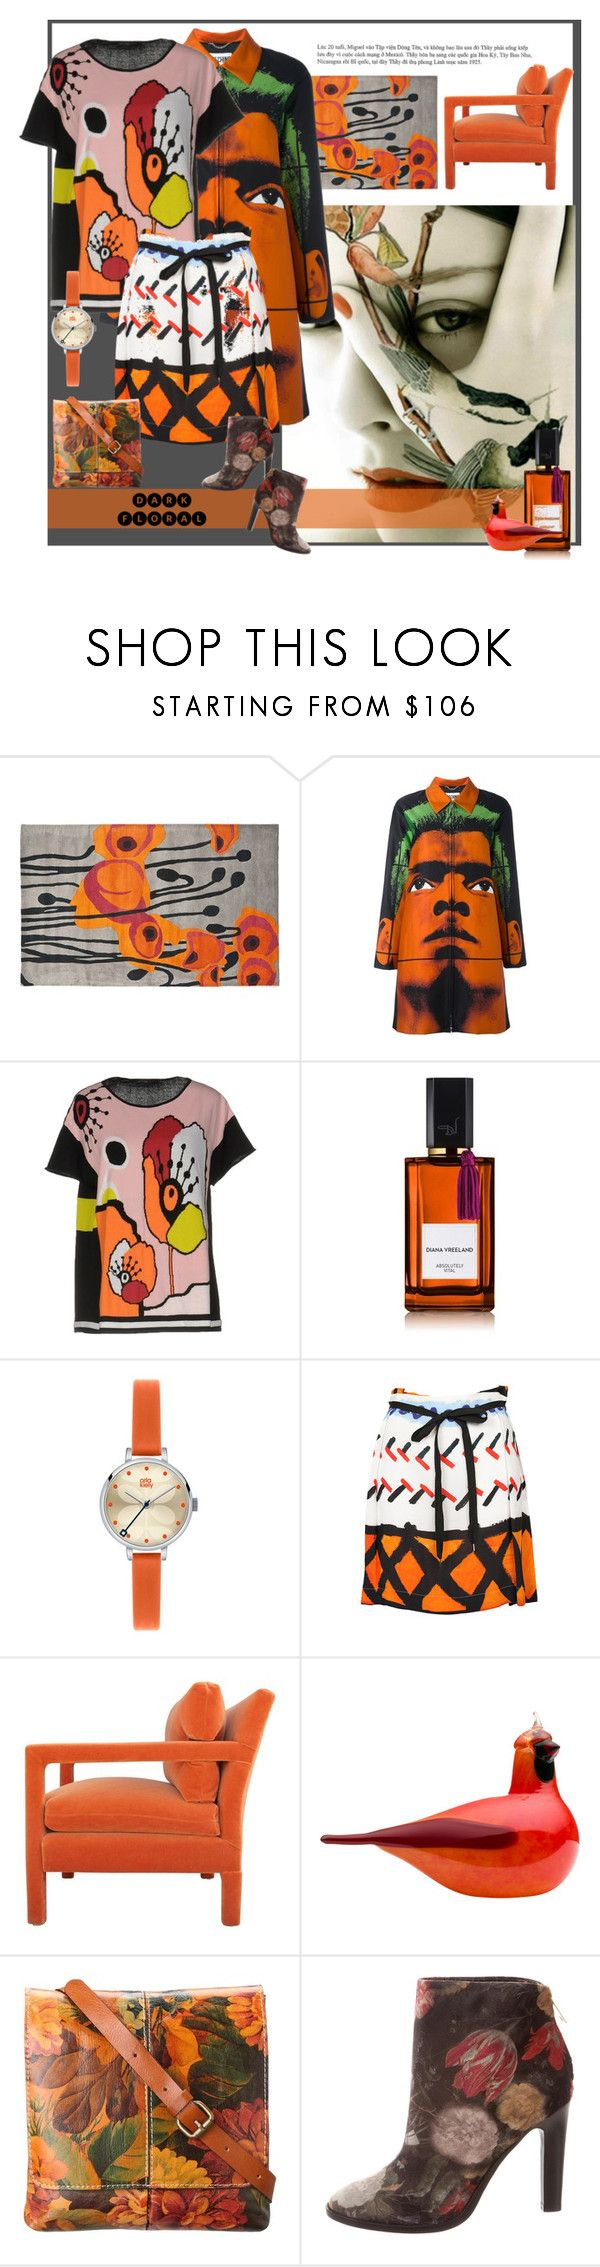 """""""Come on baby pick my flowers"""" by traceygraves ❤ liked on Polyvore featuring Safavieh, Moschino, Pianurastudio, Diana Vreeland, Orla Kiely, Vivienne Westwood Anglomania, iittala, Patricia Nash and Joie"""